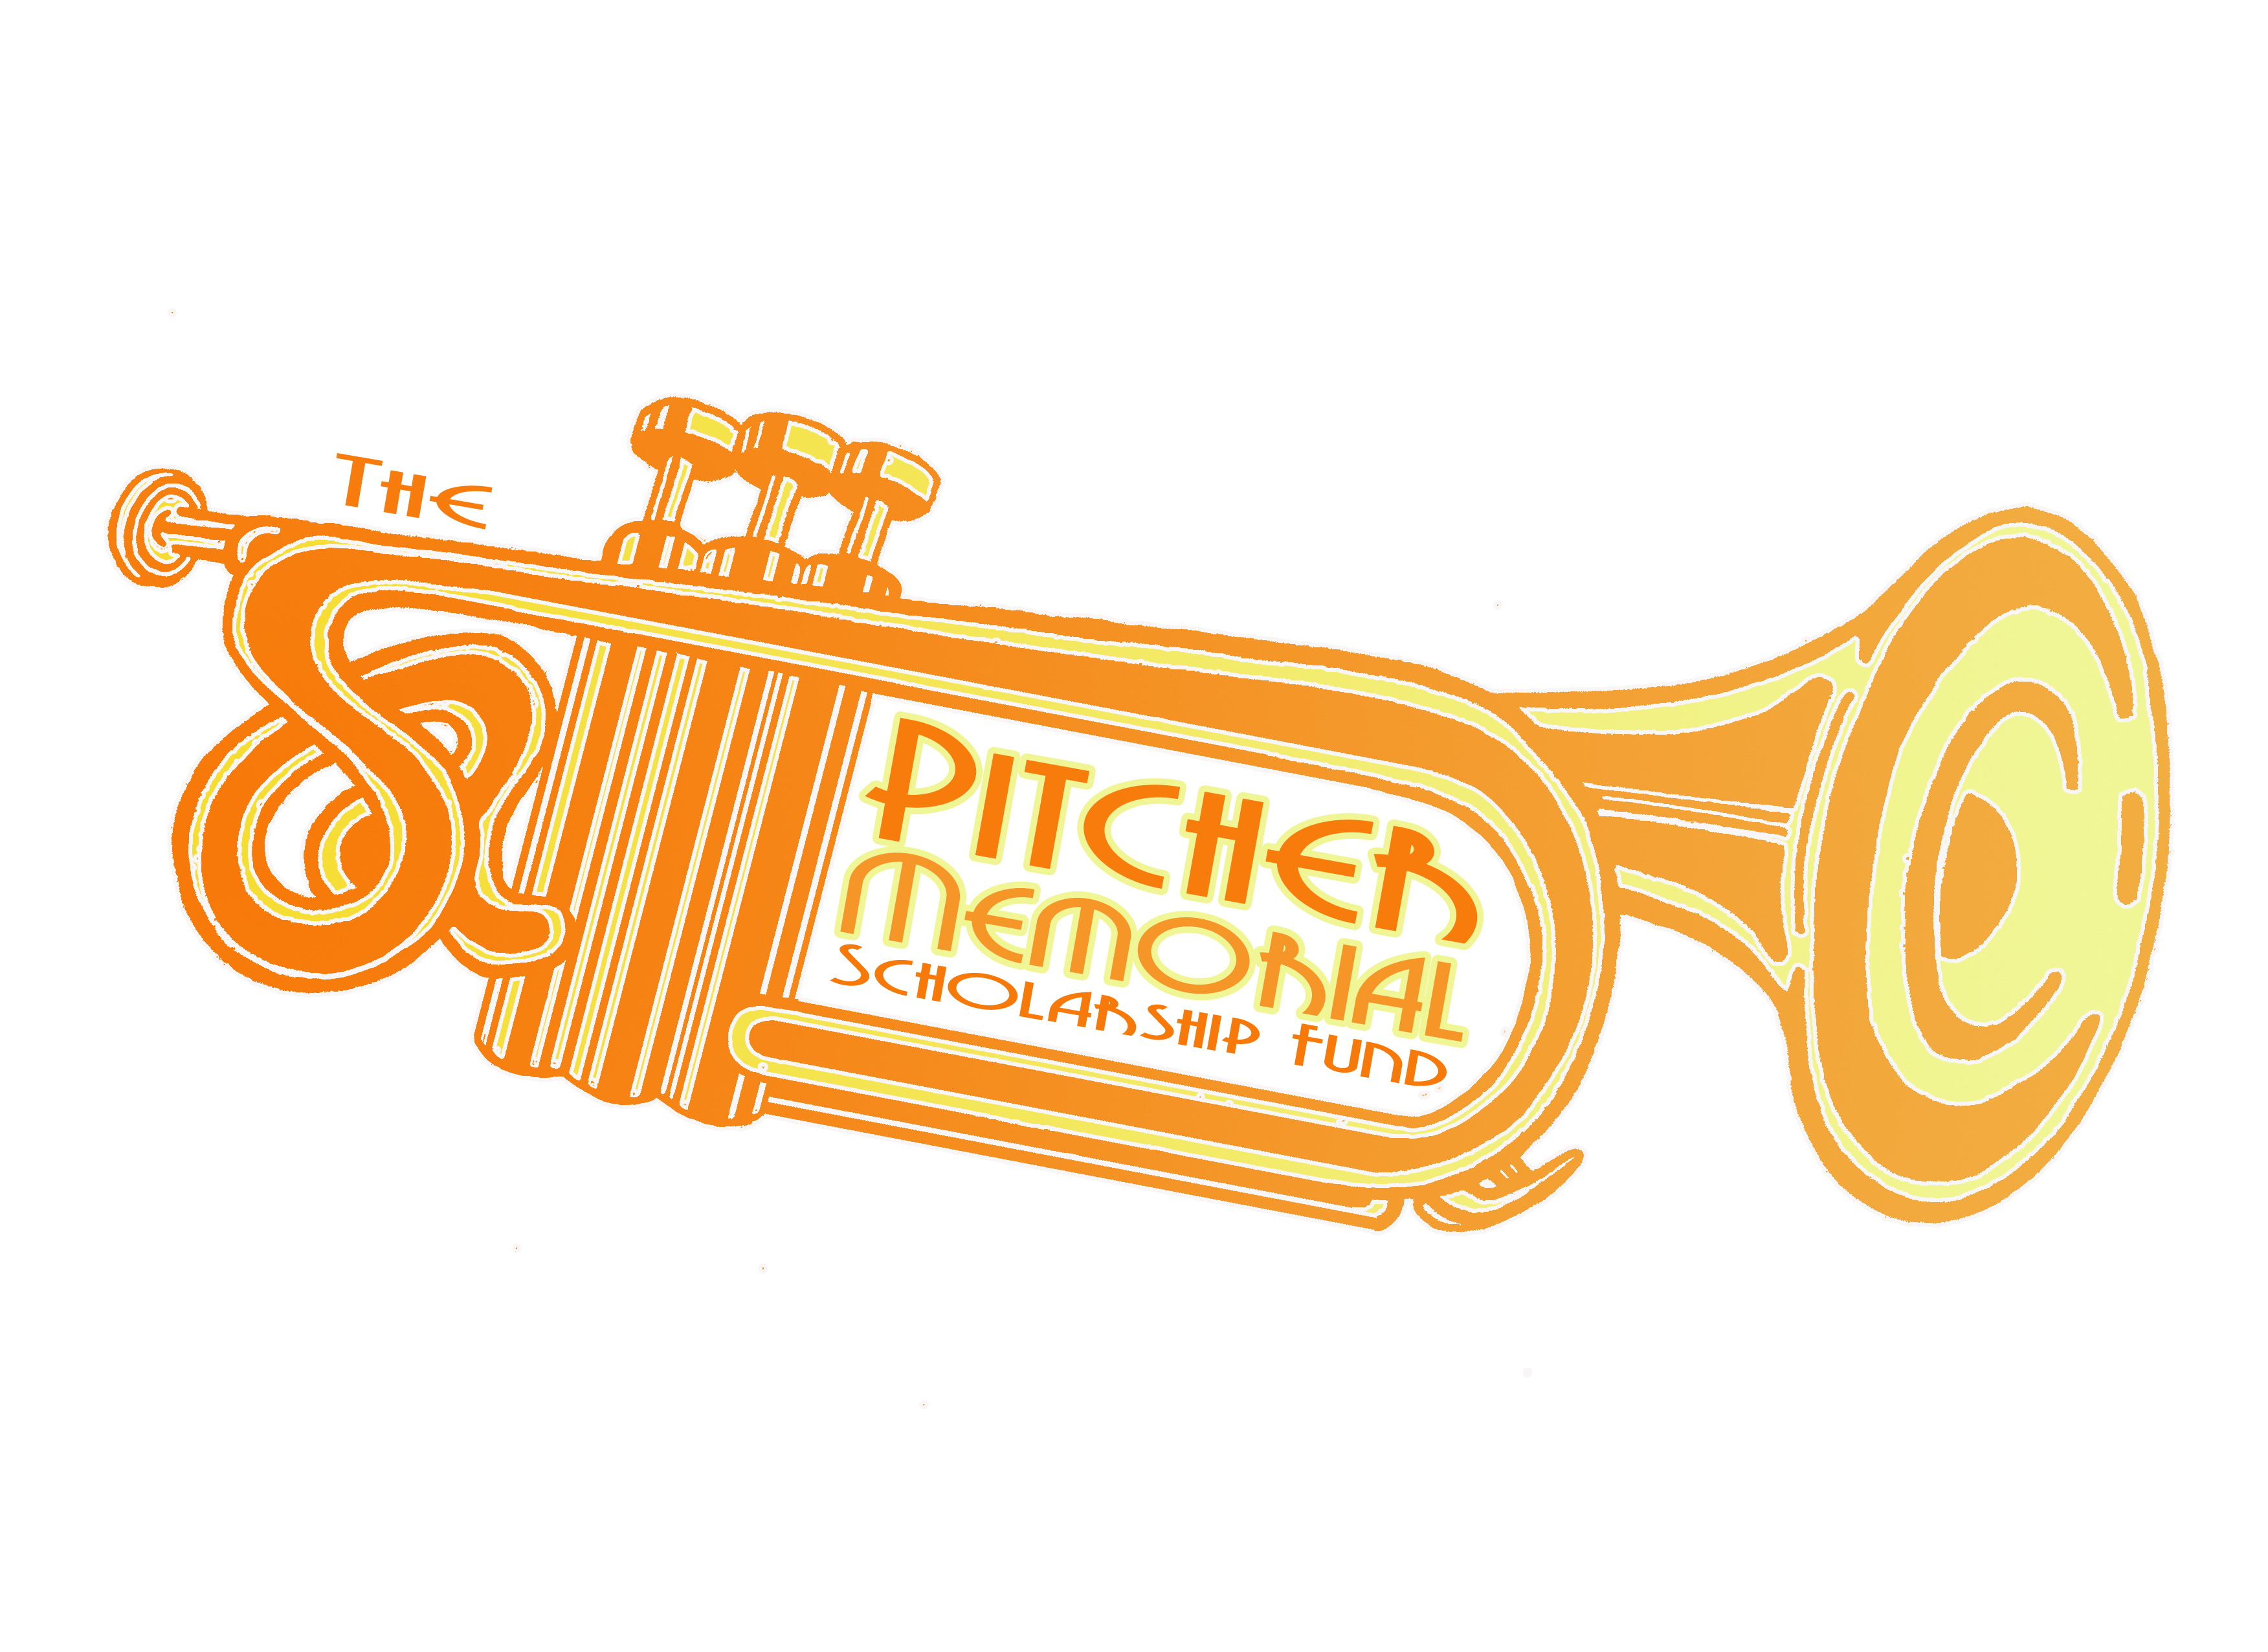 Applications due: Sam Pitcher Music Scholarship